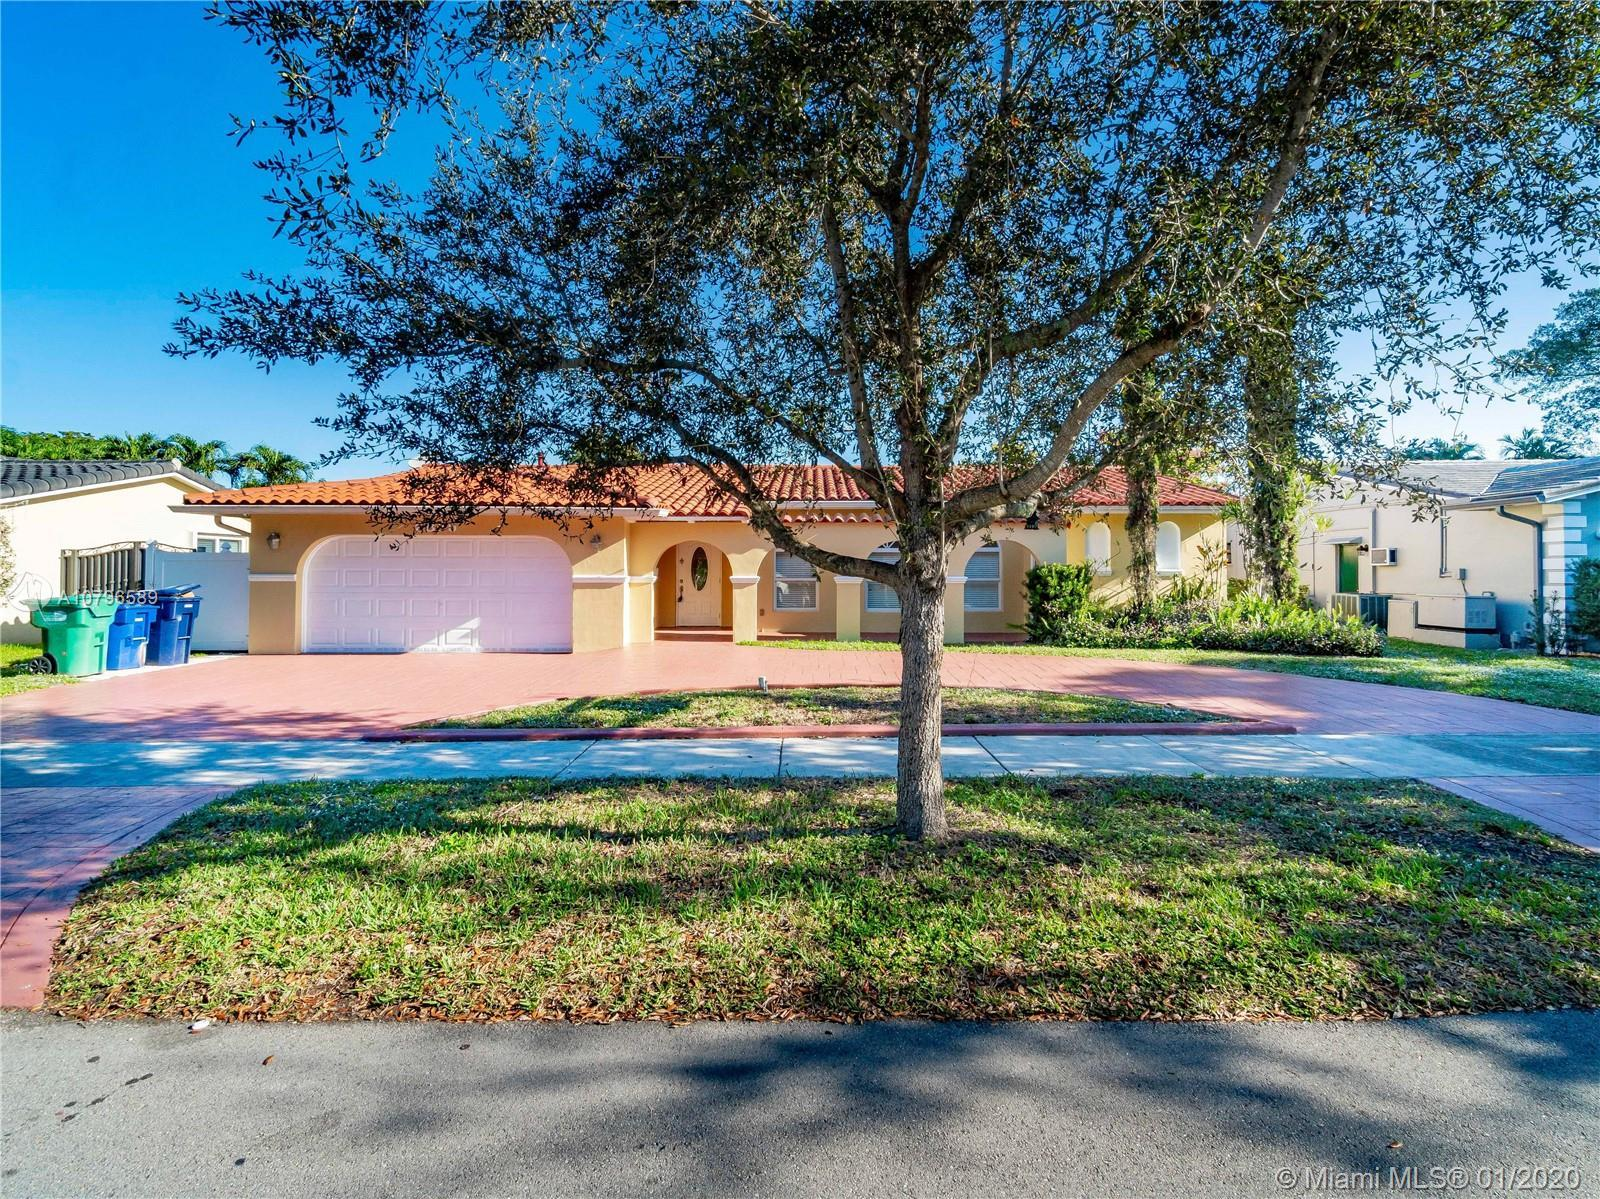 Welcome Home. Located in the heart of Miami Lakes. Short walk to Top Rated schools. This home is con